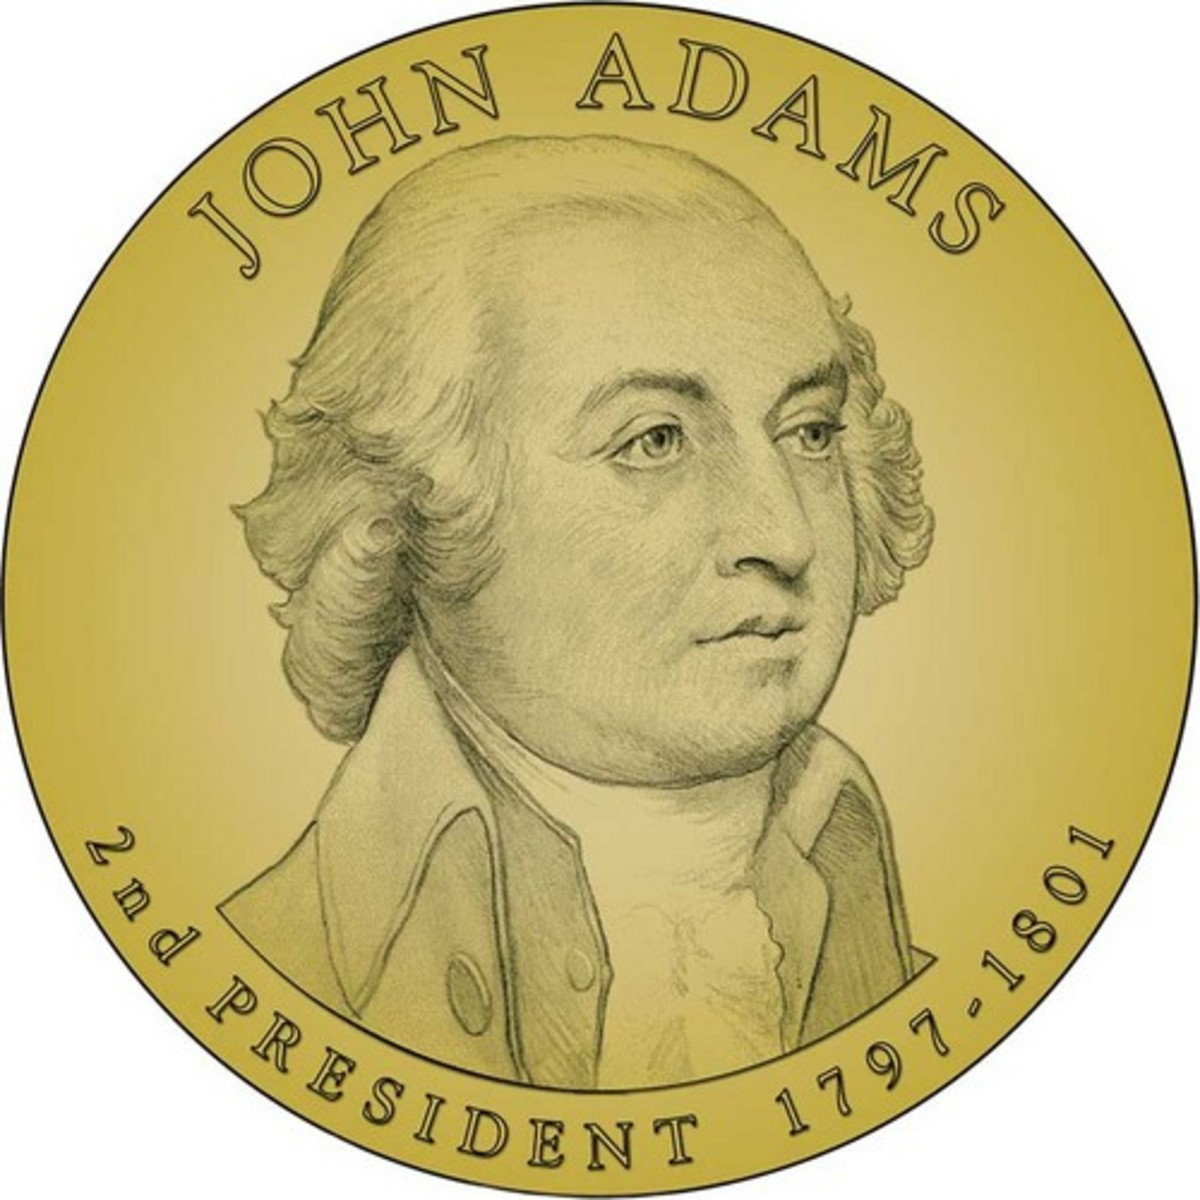 John Adams and the Vision for American Independence